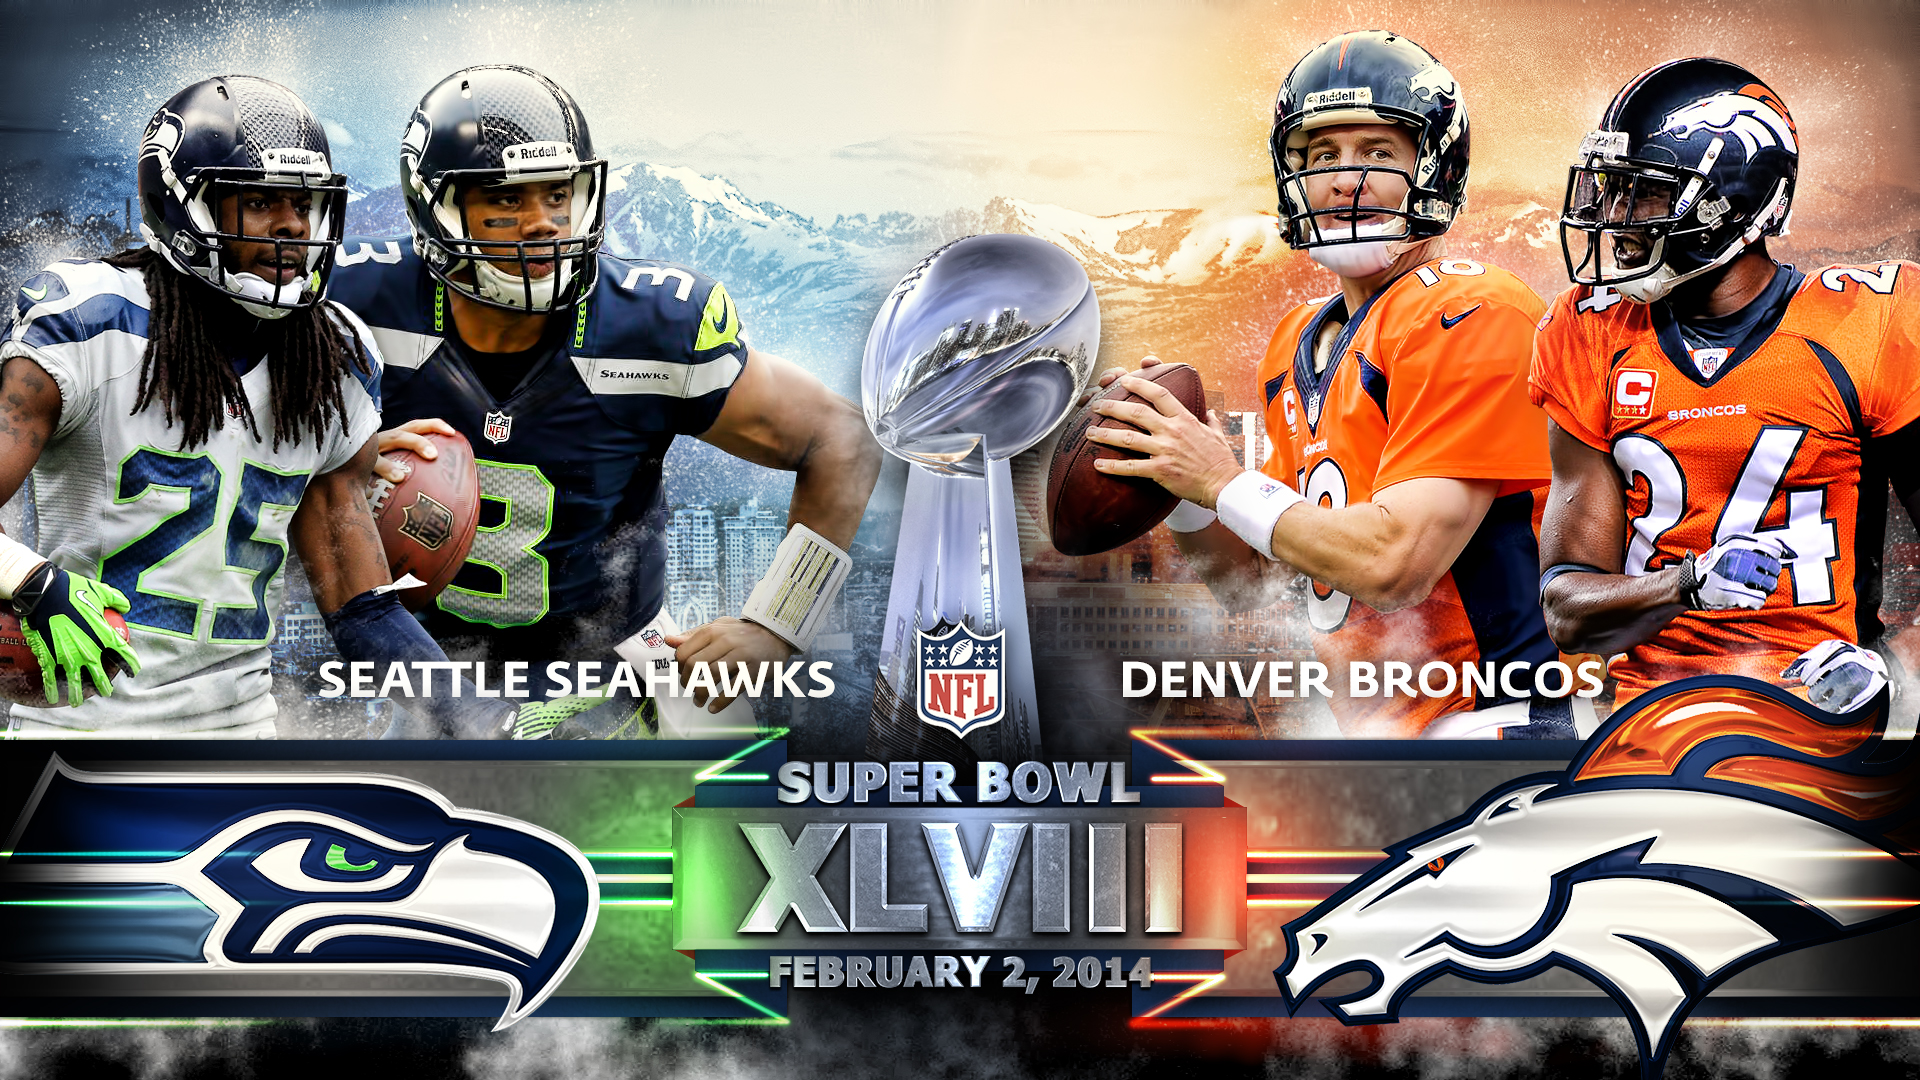 Super Bowl 48 Seattle Seahawks Denver Broncos Wall By